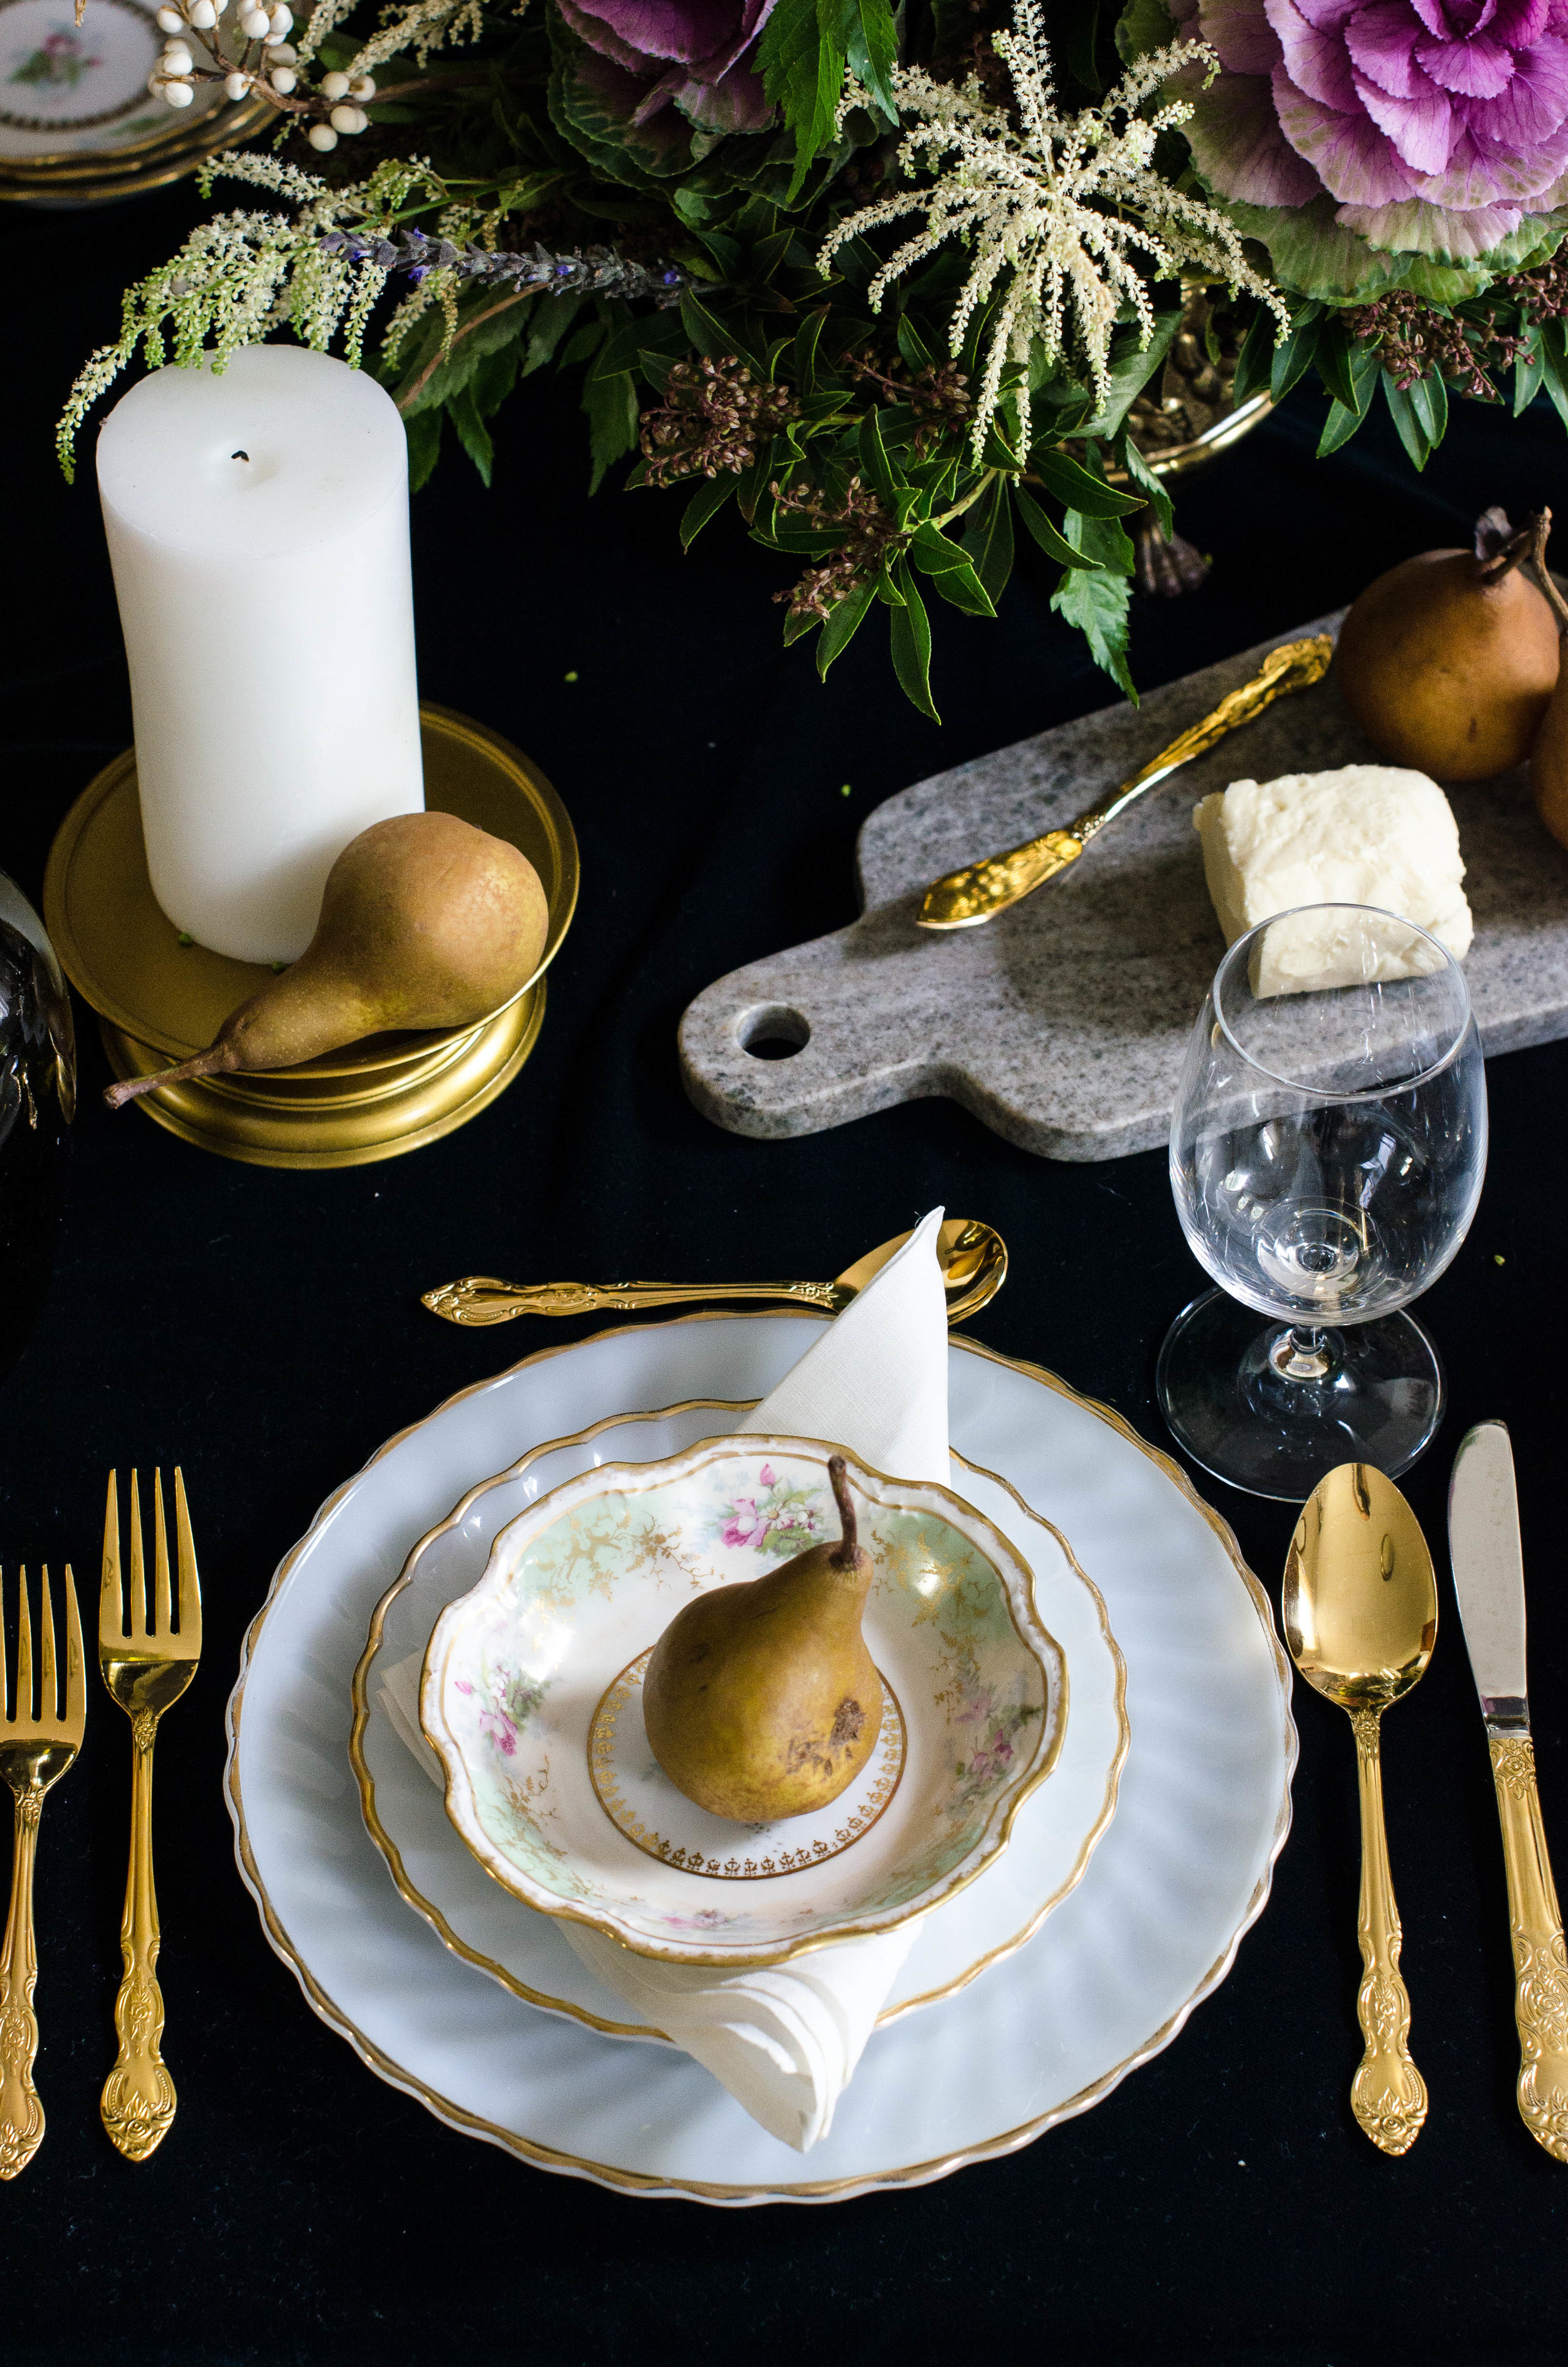 A Barlett pear and vintage French linen napkins create a simple, yet elegant table setting